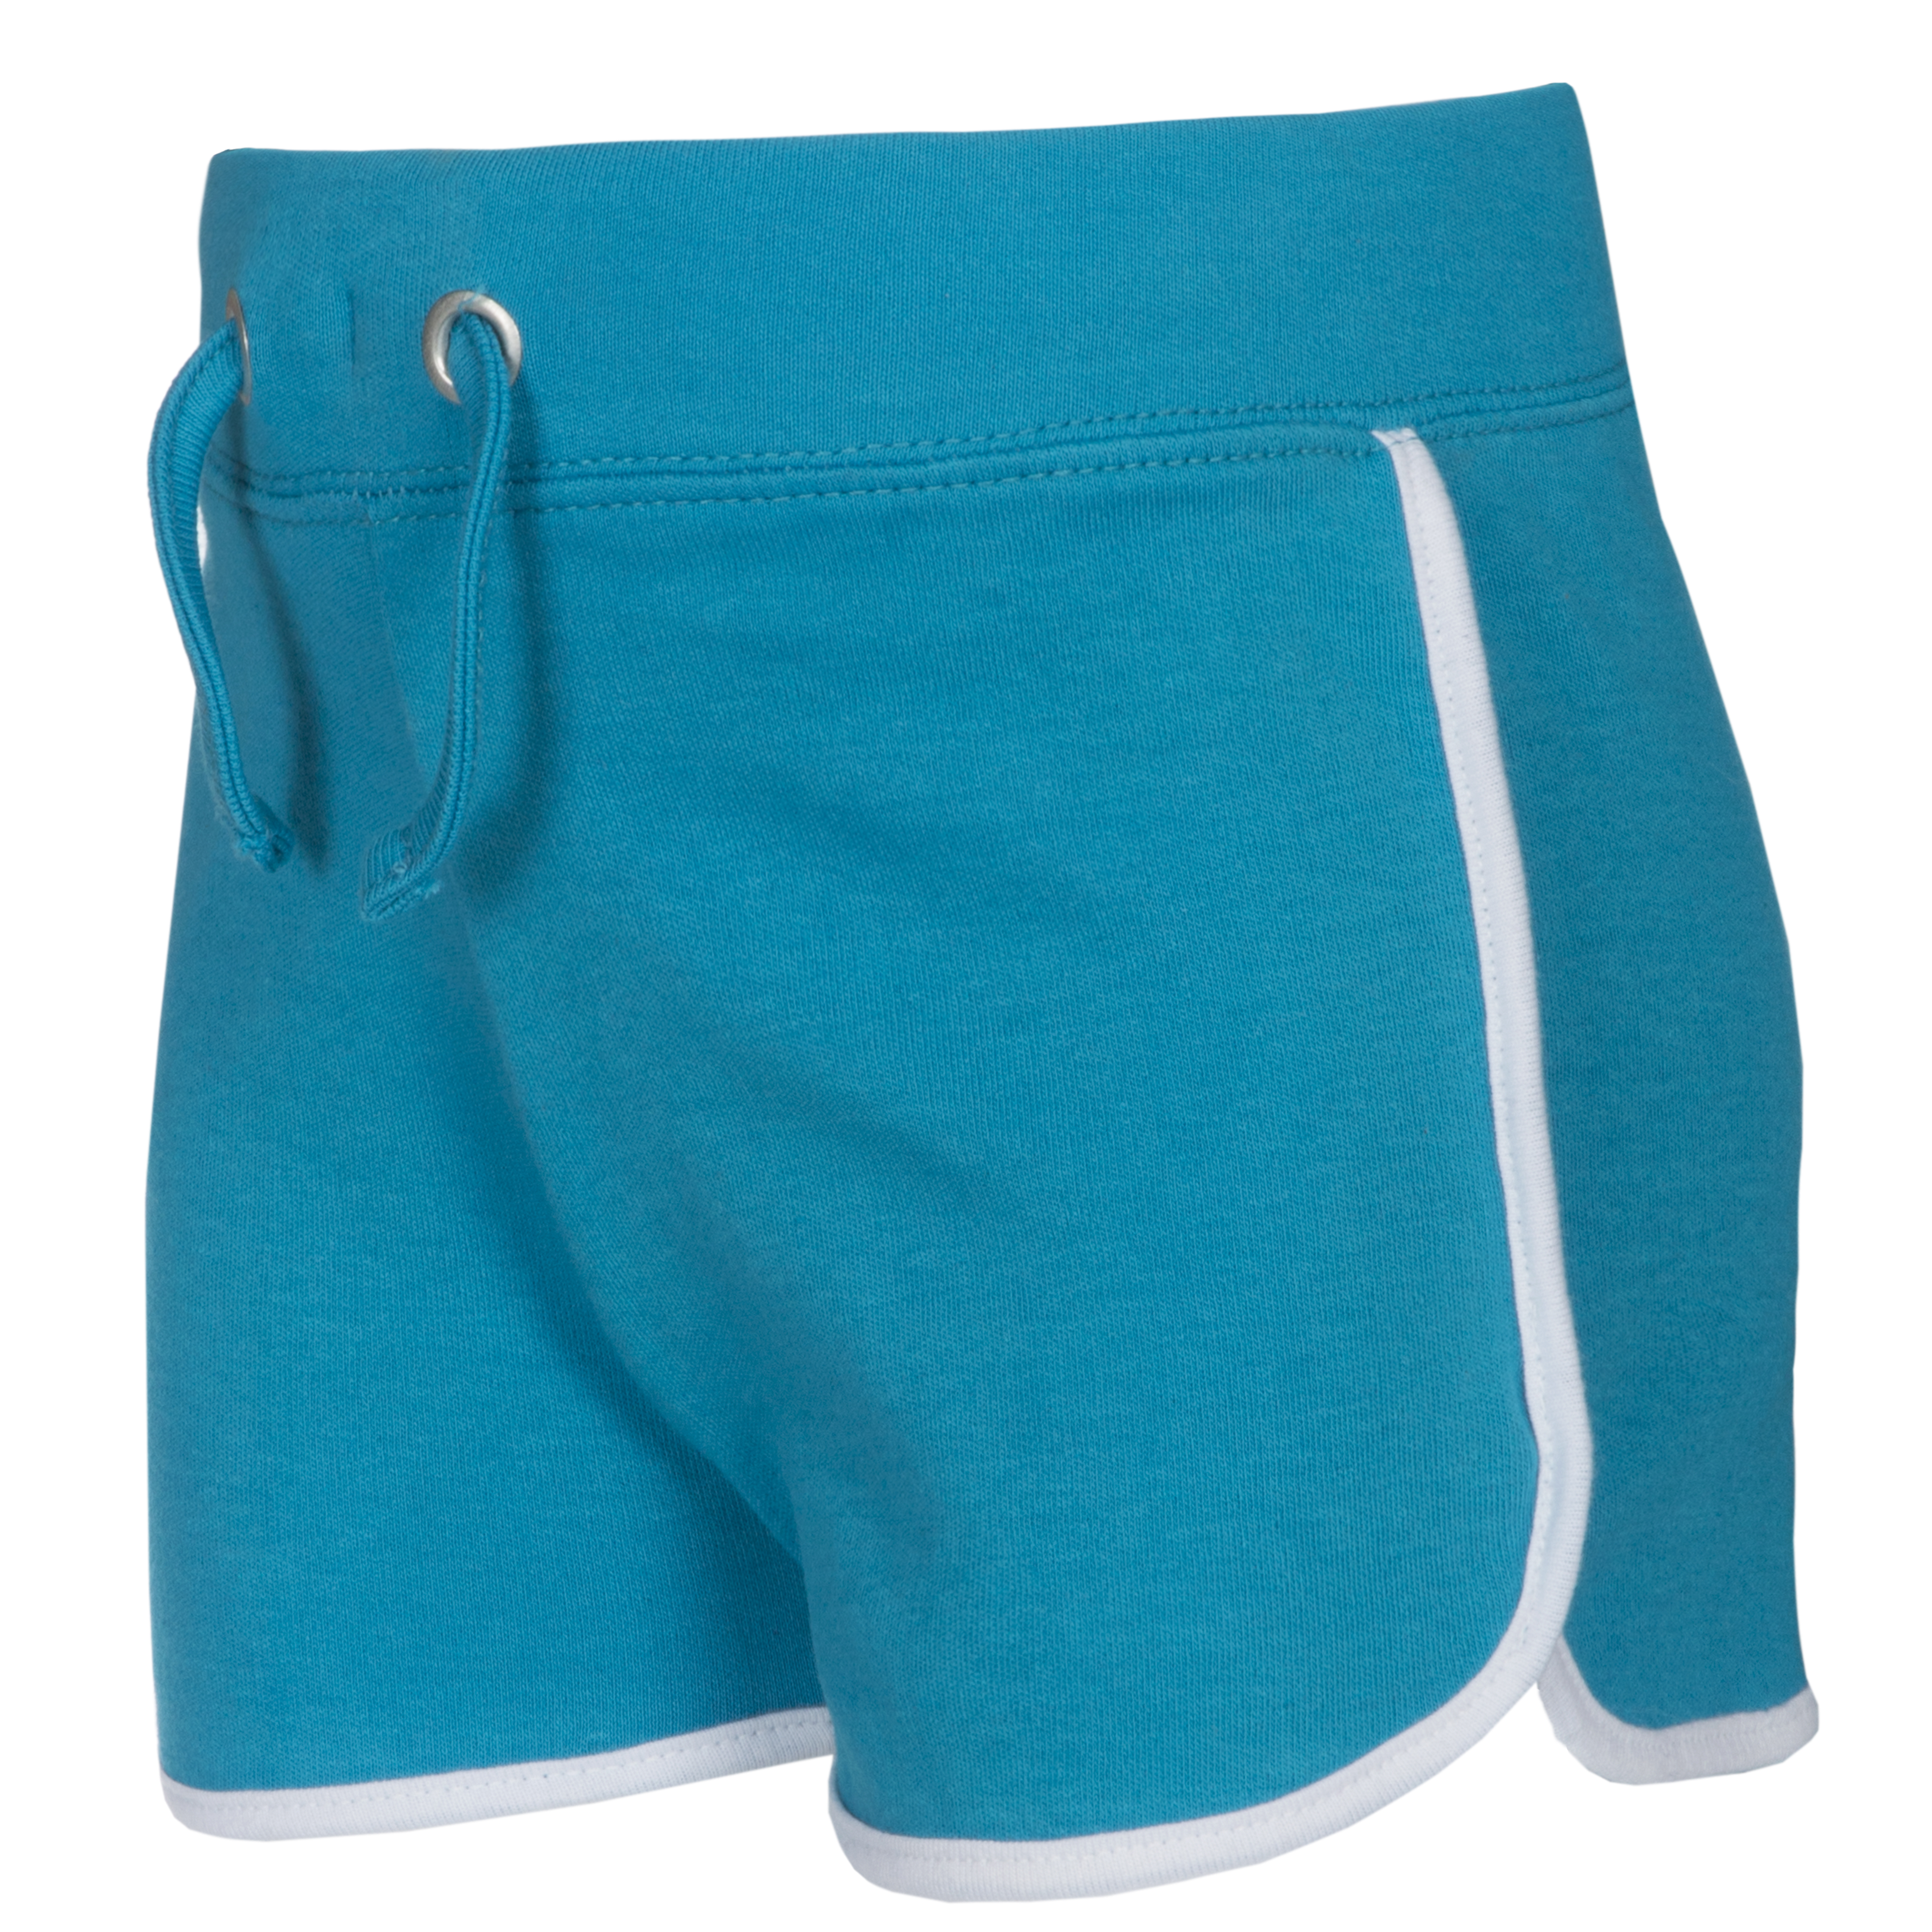 Girls Holiday Summer 100/% Cotton Jersey Shorts Bottoms Hotpants PE Age 7-8 Years